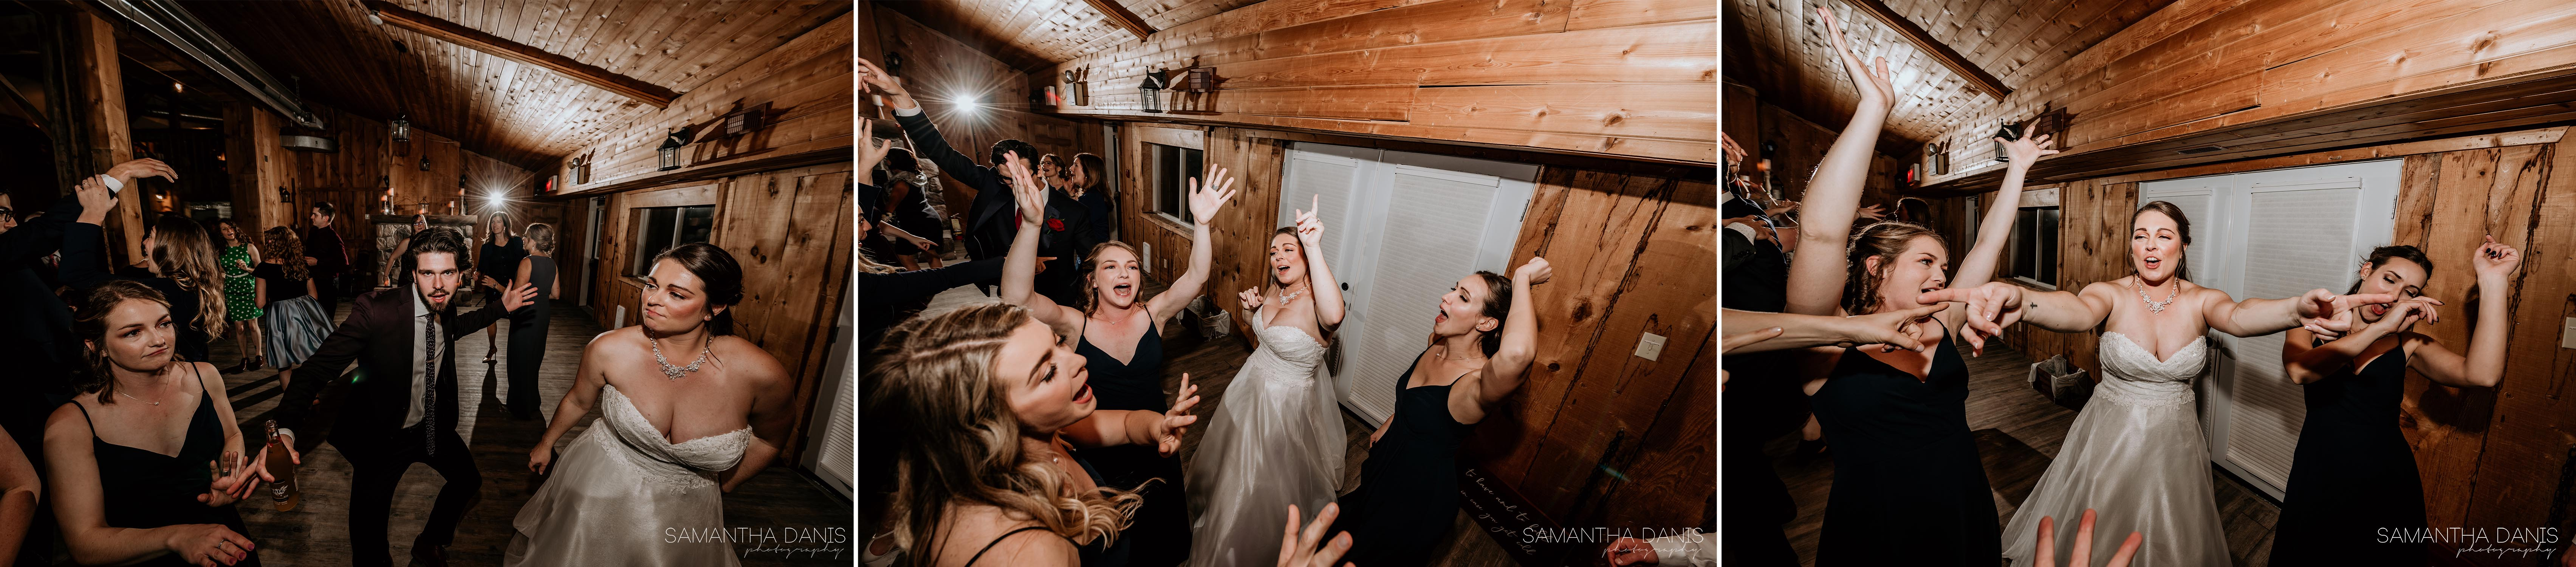 party on the dance floor strathmere Ottawa wedding venue